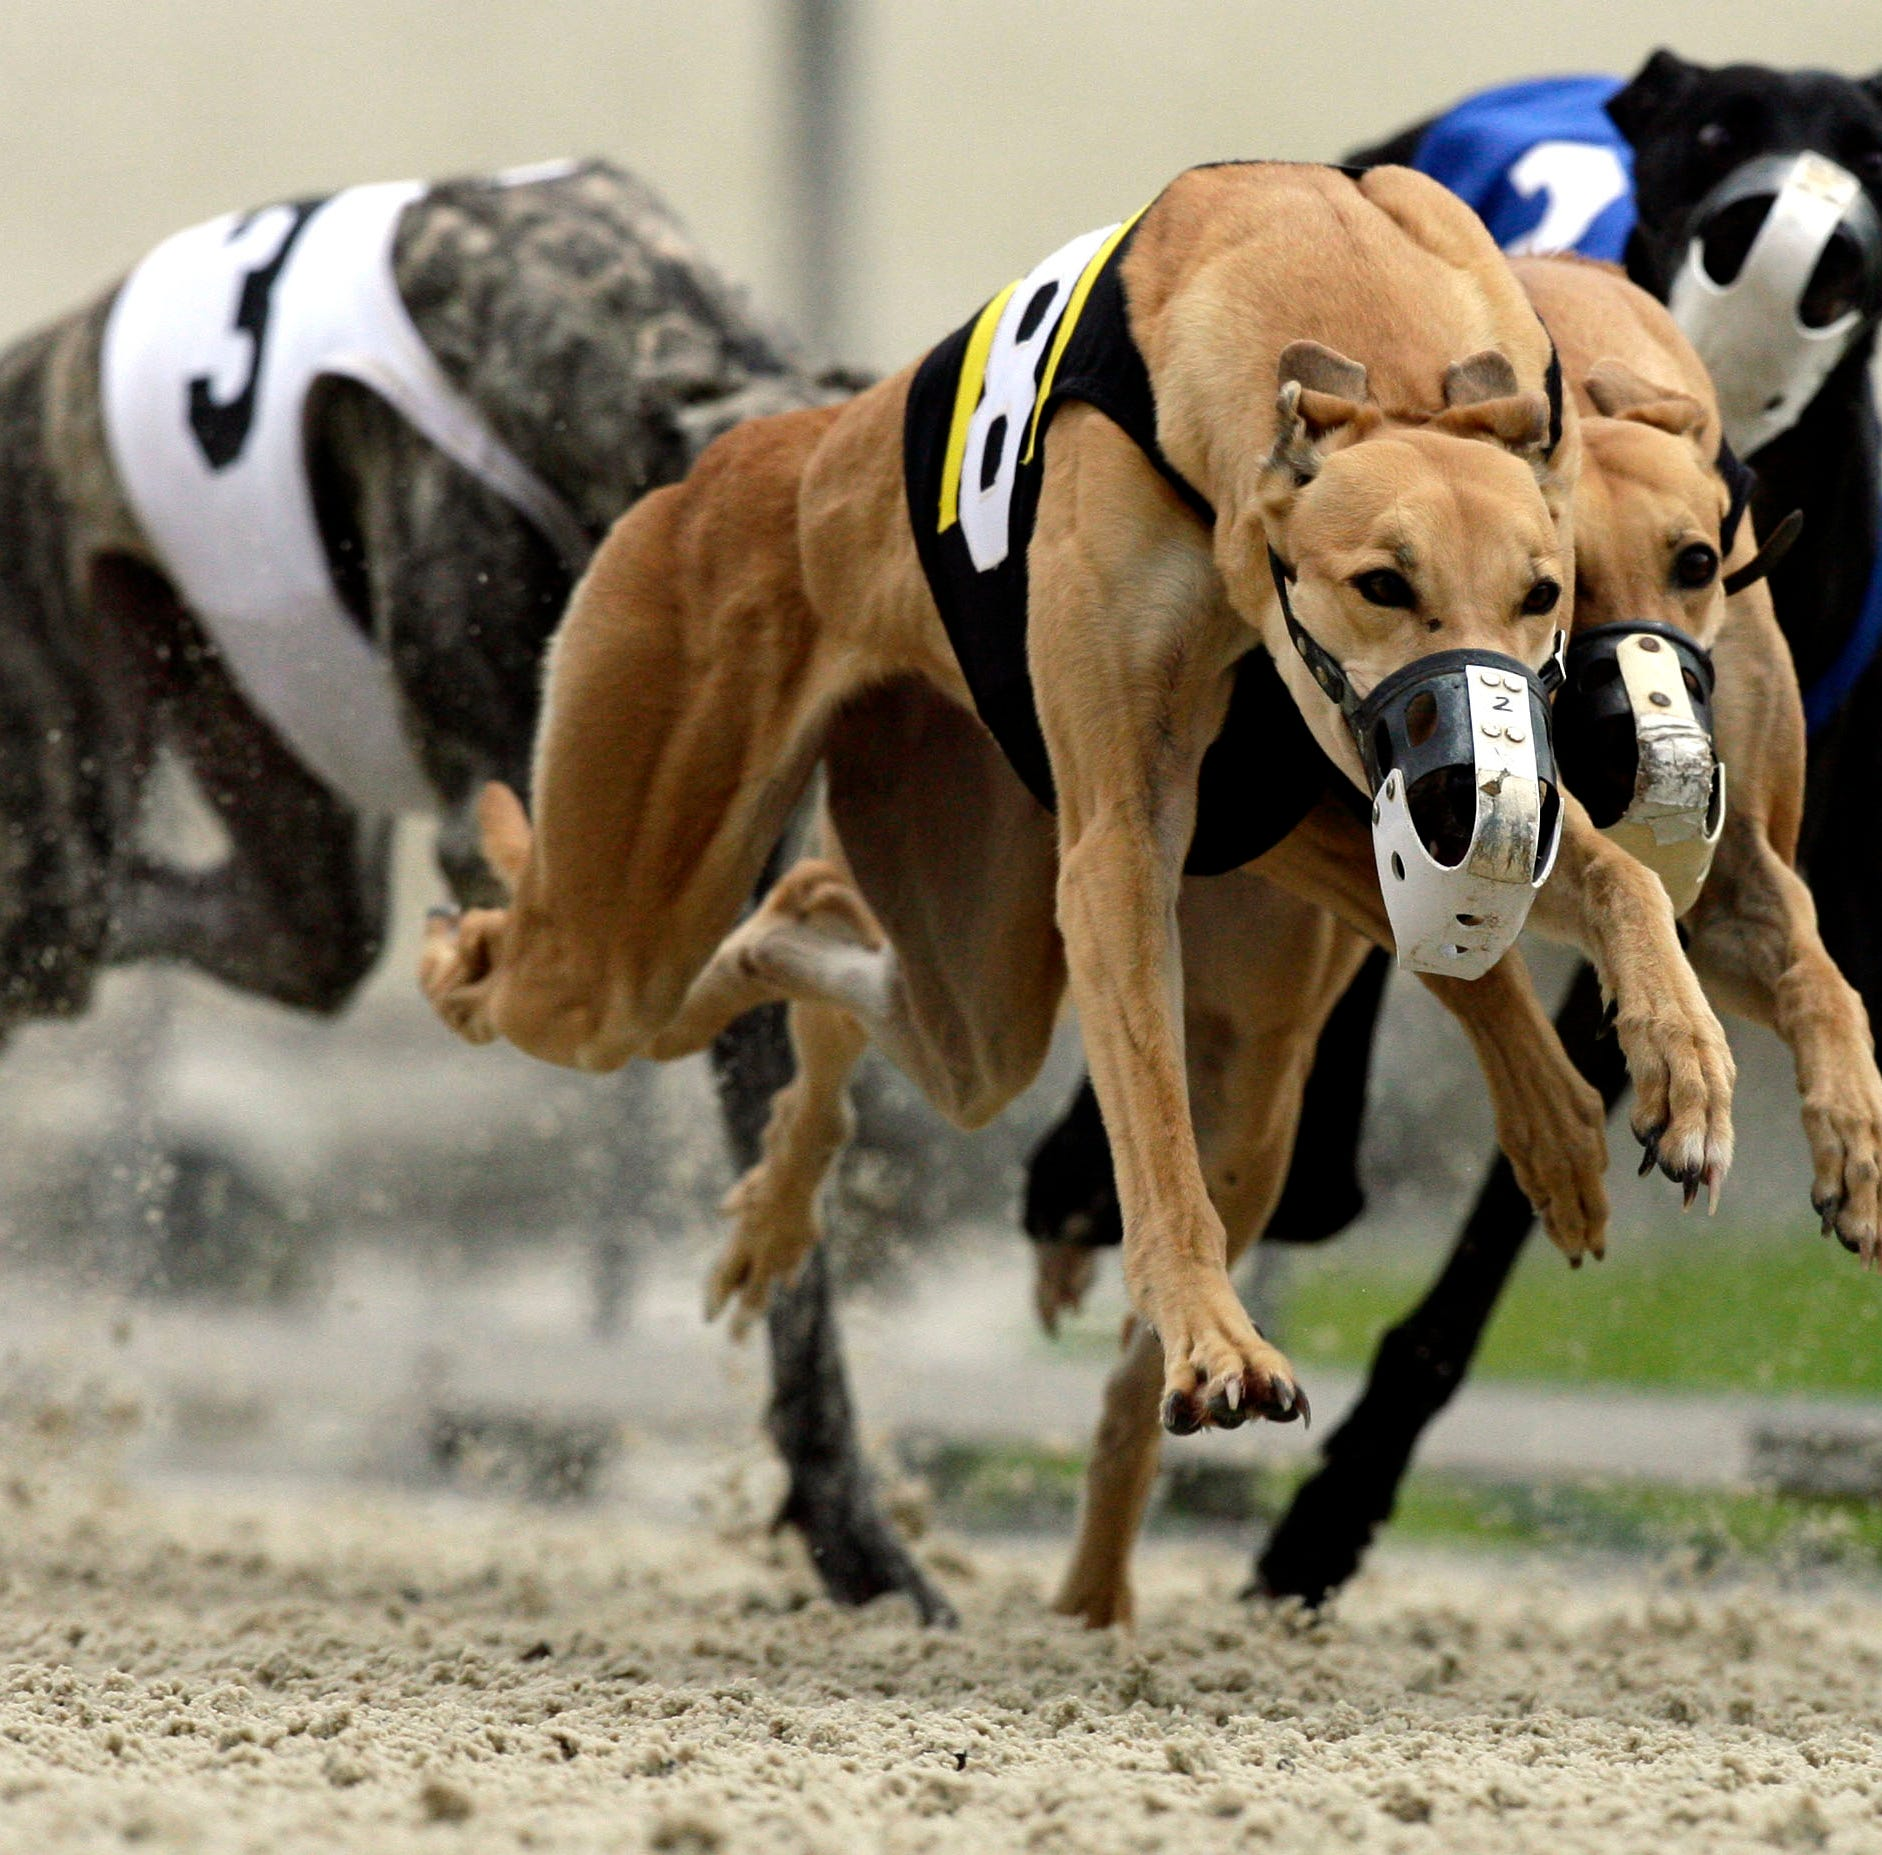 About 300 Pensacola greyhounds will be displaced by amendment to end Florida dog racing